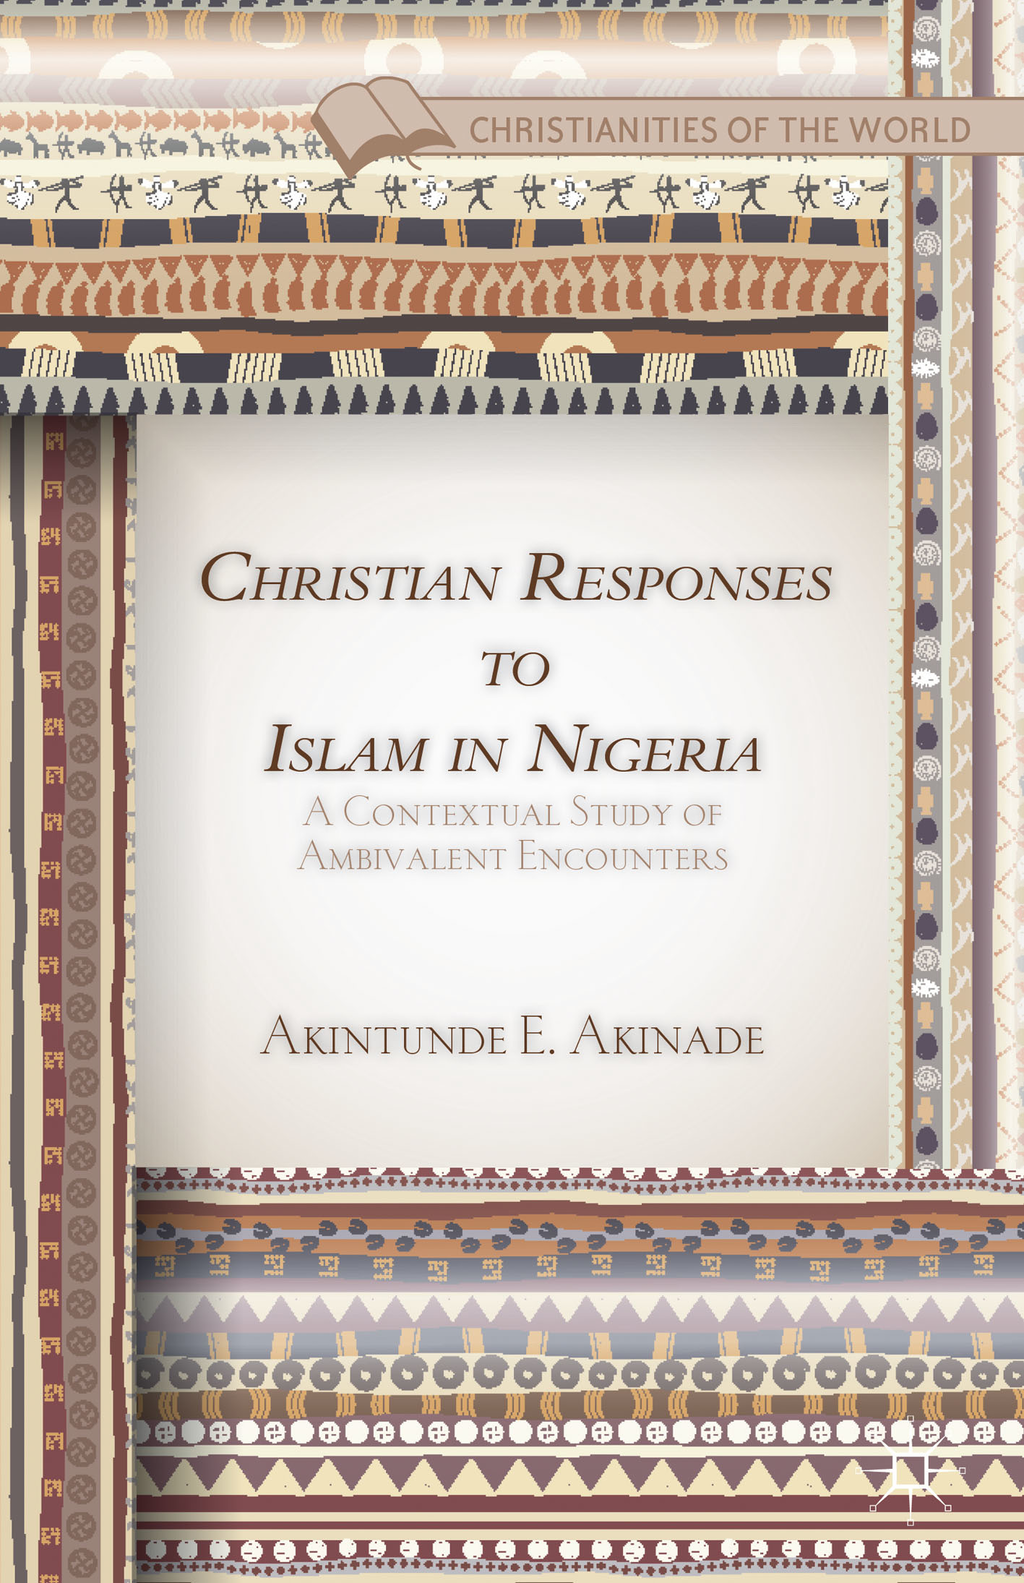 Christian Responses to Islam in Nigeria A Contextual Study of Ambivalent Encounters